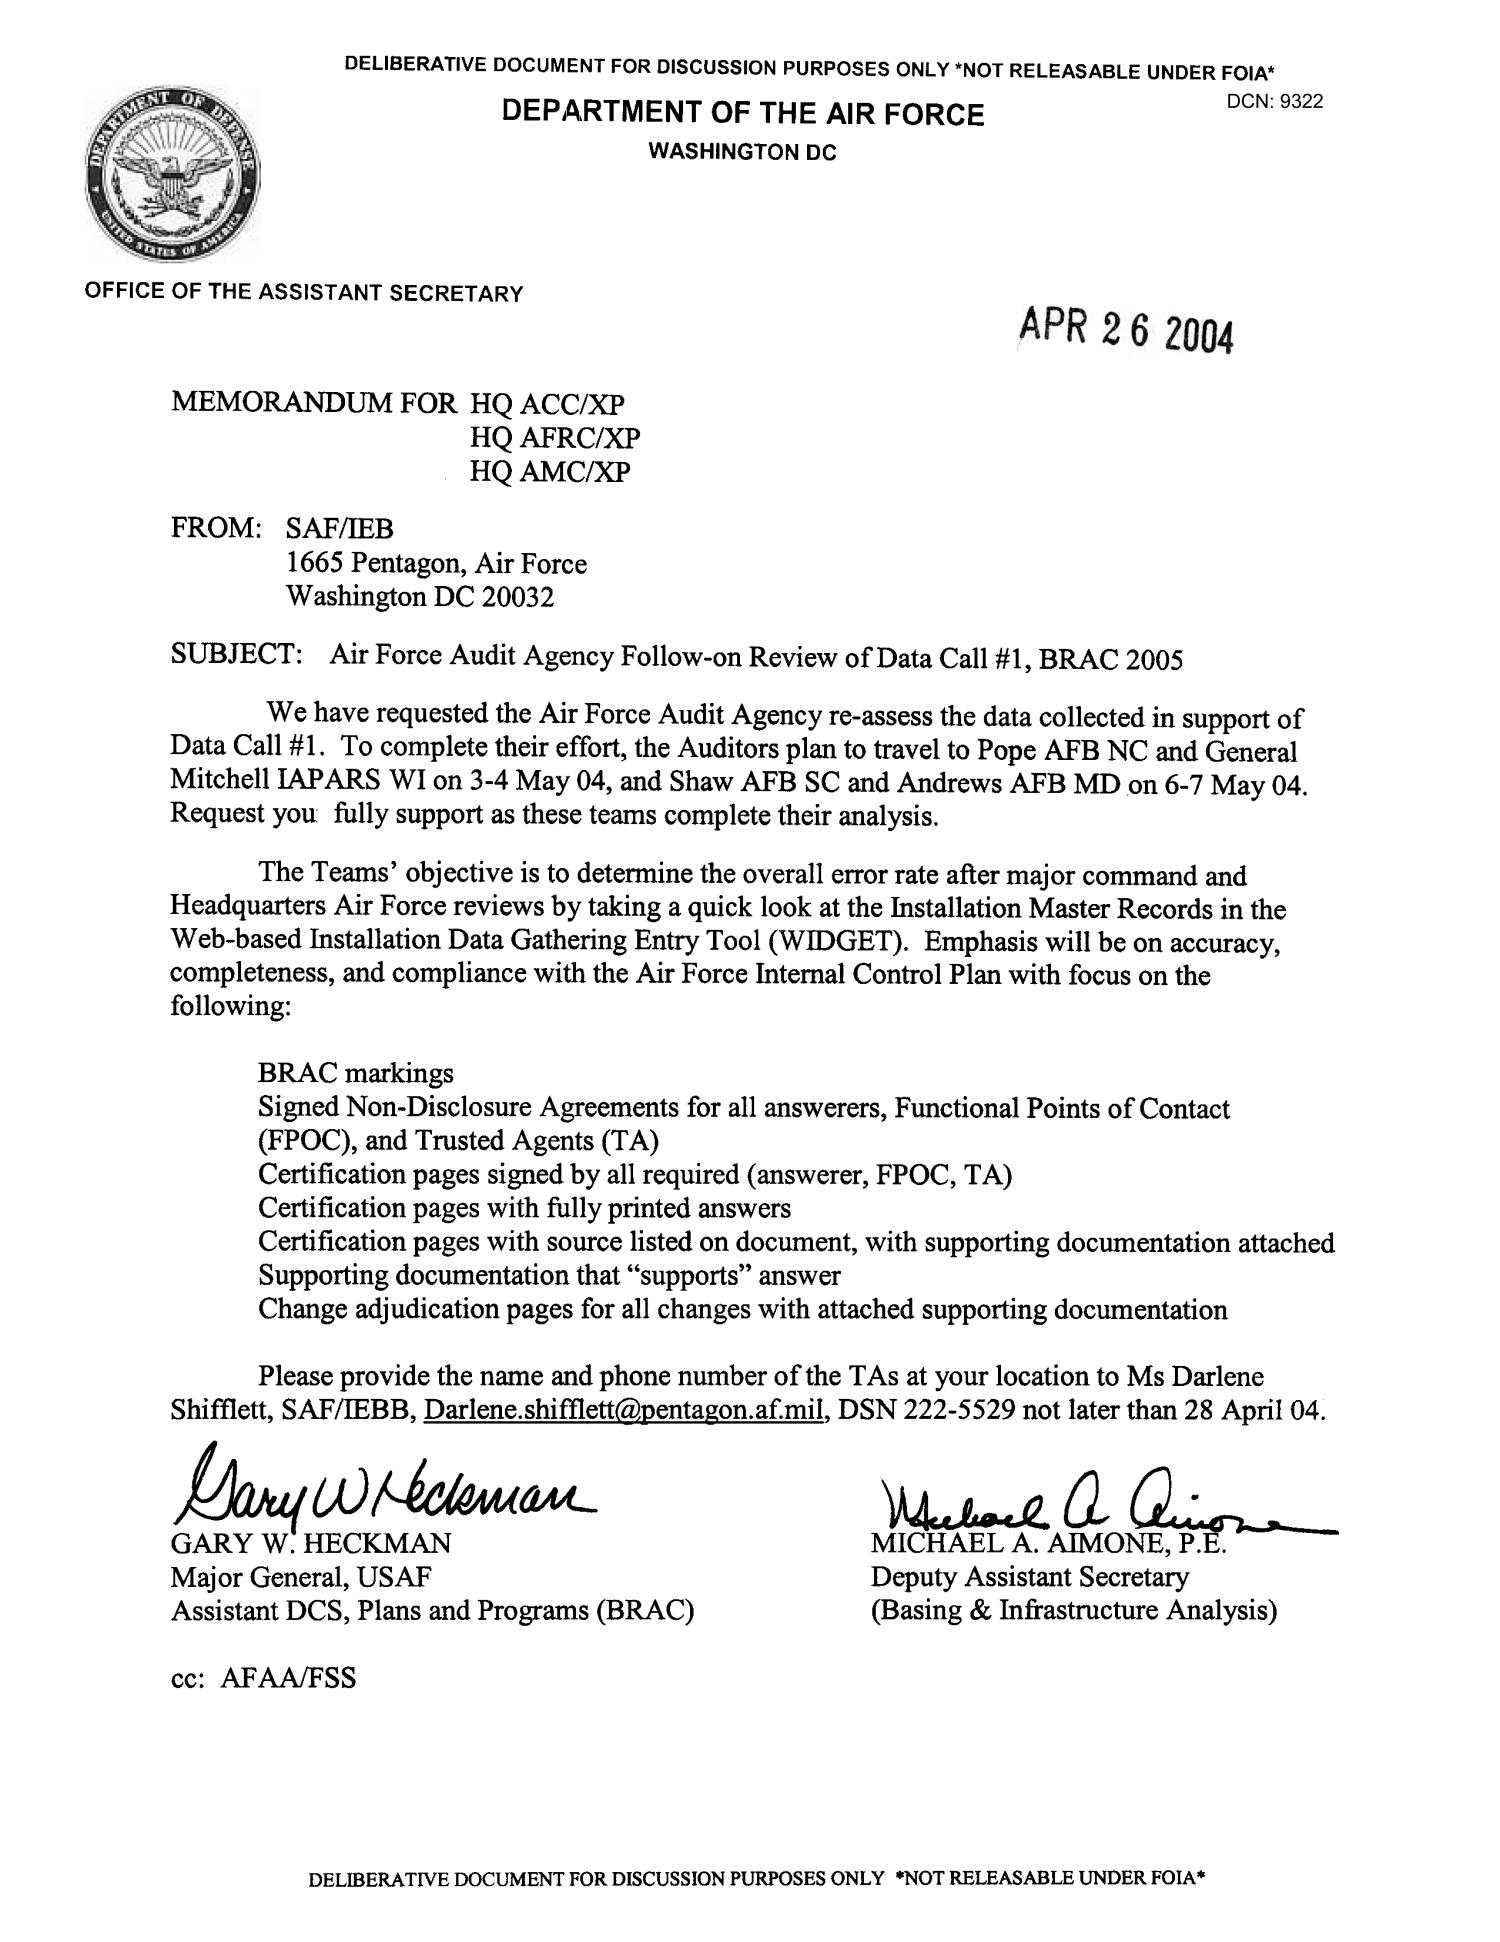 Memorandum In Reference To Air Force Audit Agency Follow On Review